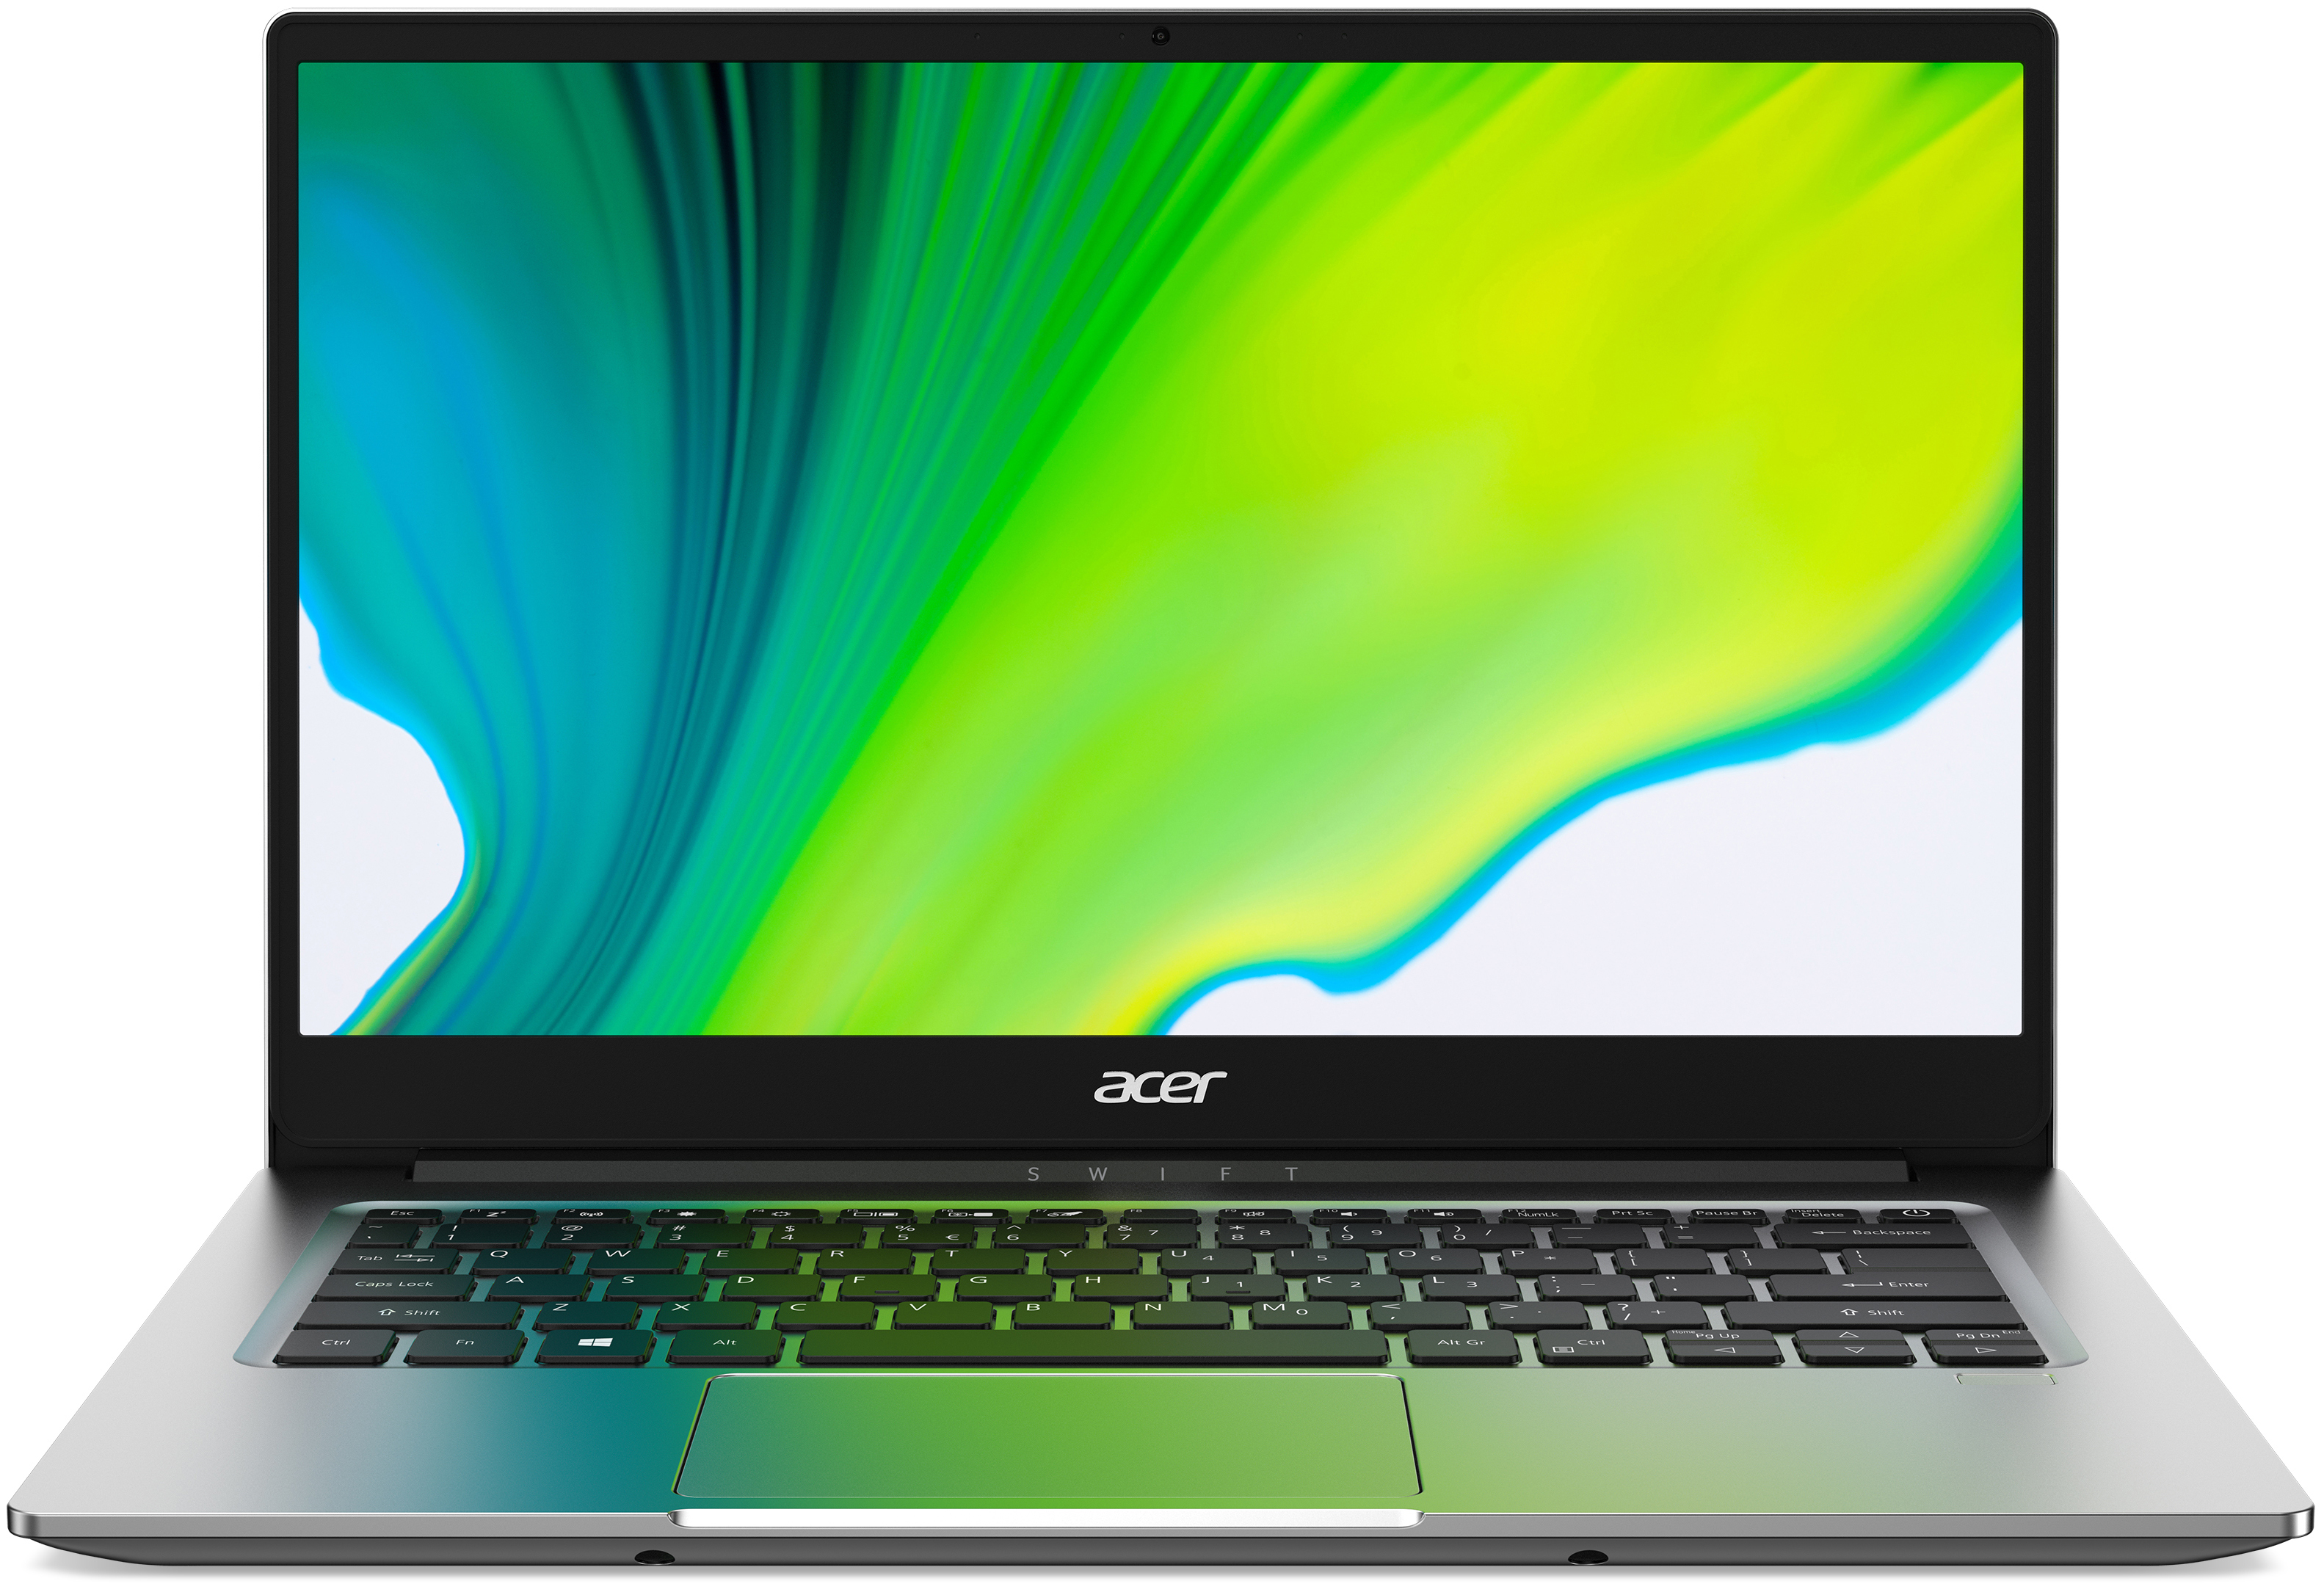 Ryzen Roundup A Quick Overview Of Ryzen Mobile 4000 Laptops From Acer Asus Dell Msi